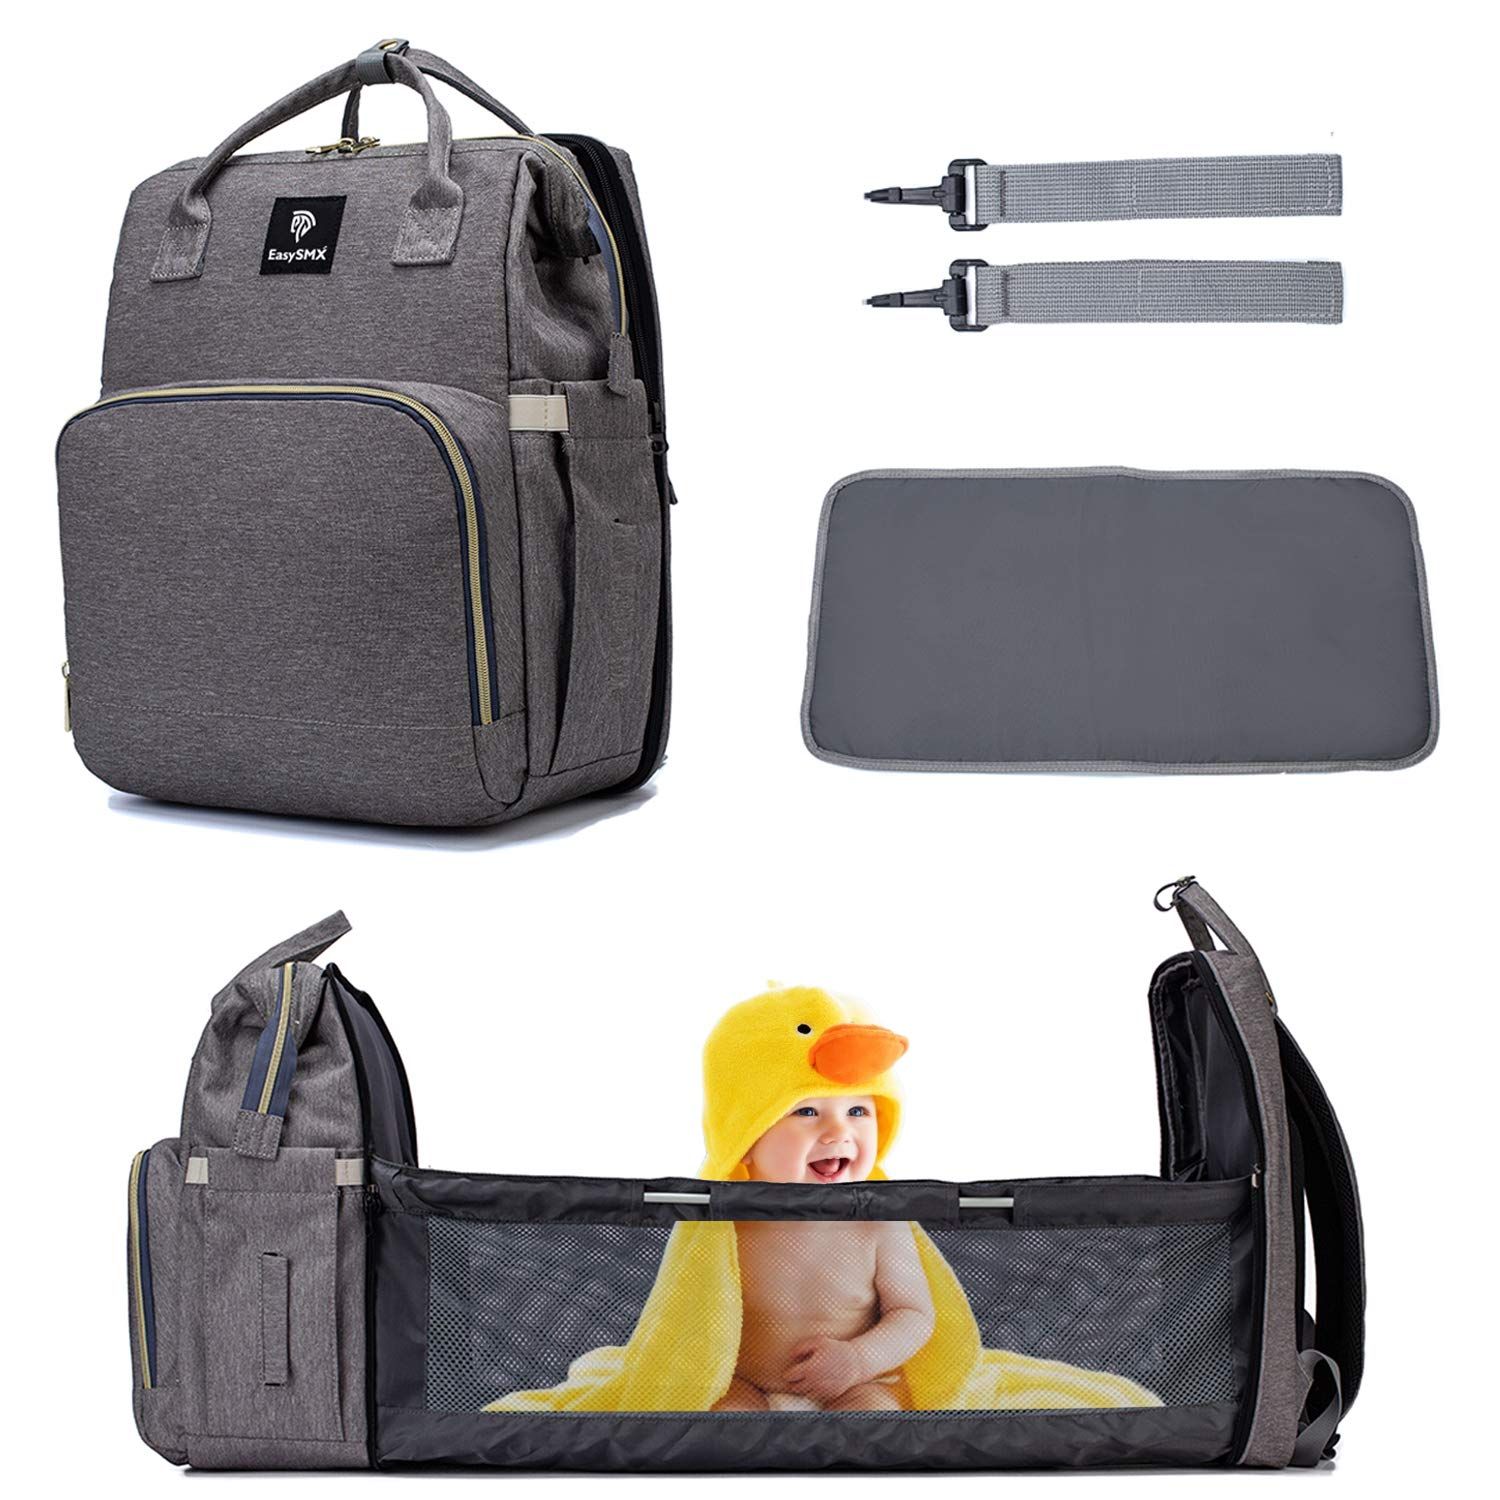 Diaper Bag Backpack, EasySMX Travel Diaper Bag with Foldable Baby Bed, Waterproof Backpack for Baby Stuff, Nappy Bag Changing Station, Diaper Bag with Portable Bassinet, Grey